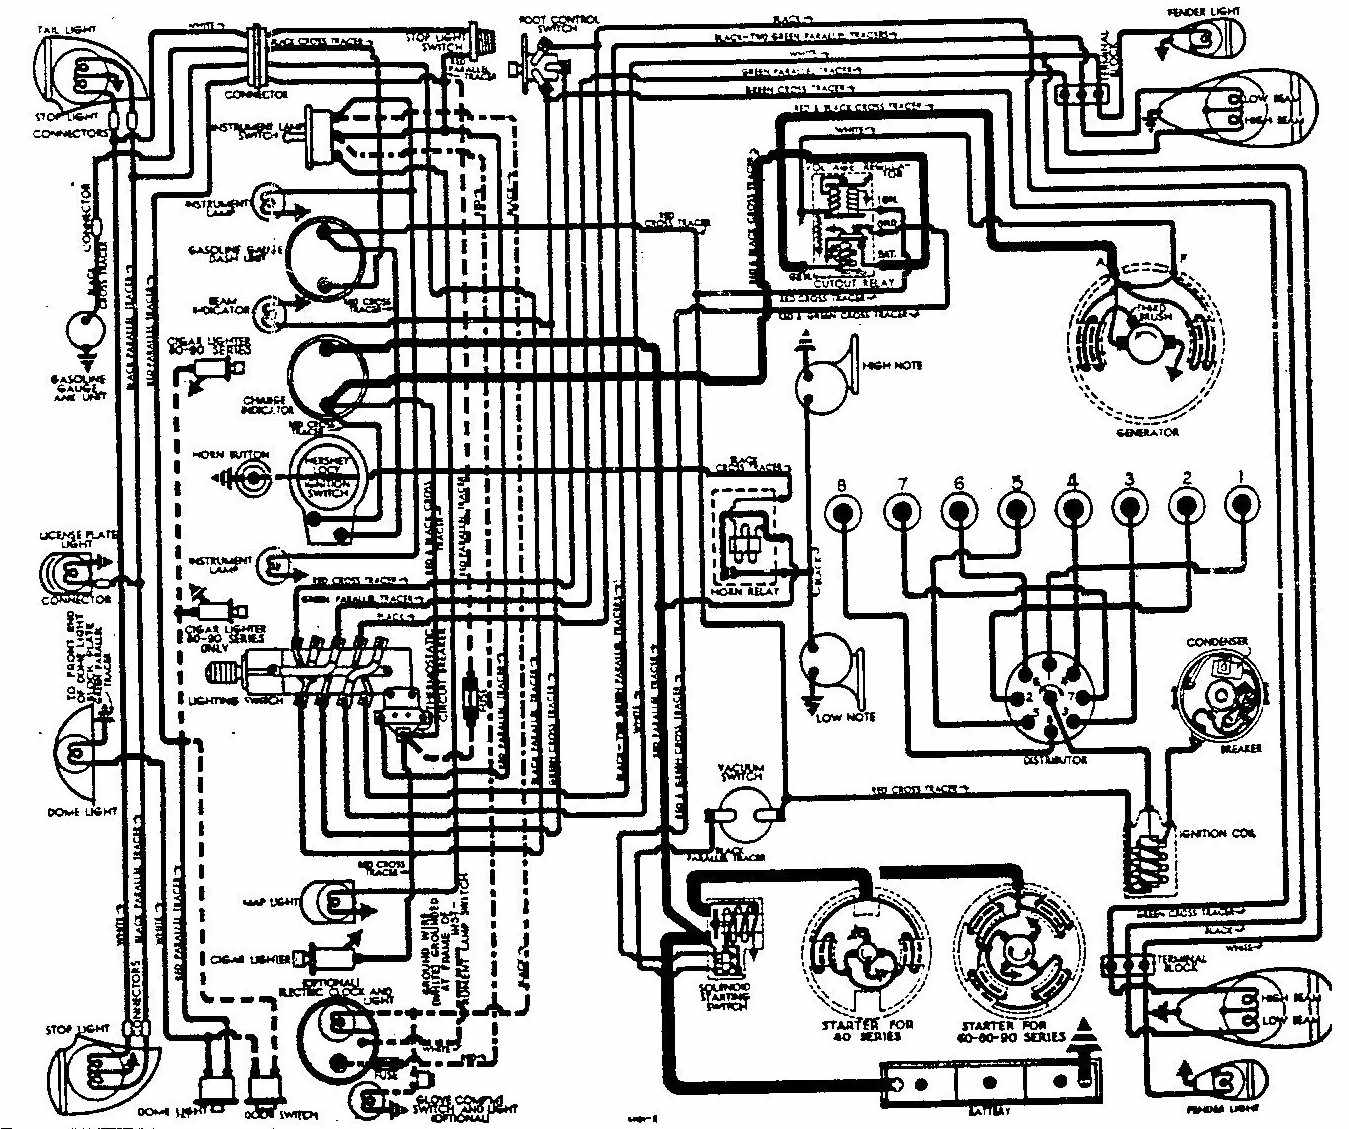 ford 8730 wiring diagram wiring diagram for a ford tractor 3930 the wiring diagram ford 2000 tractor wiring diagram nodasystech